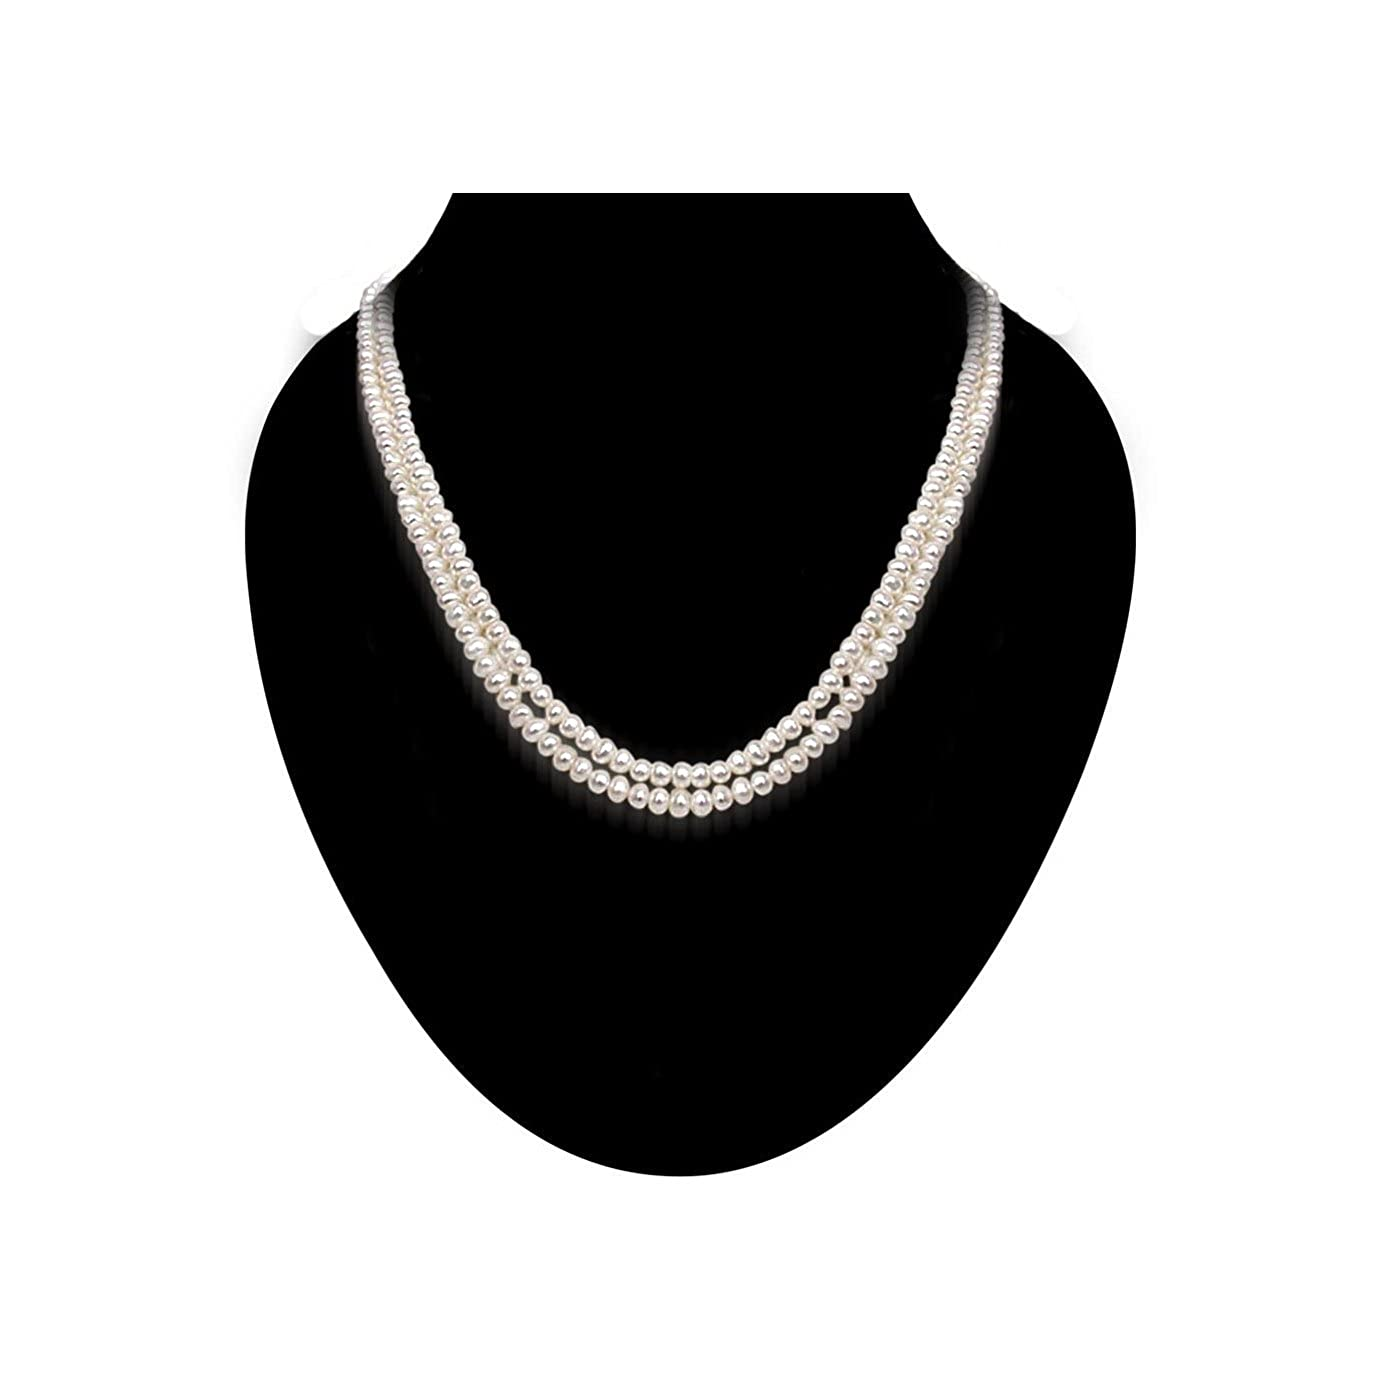 Regale - 2 Line Real Freshwater Pearl Necklace for Women (SP264)